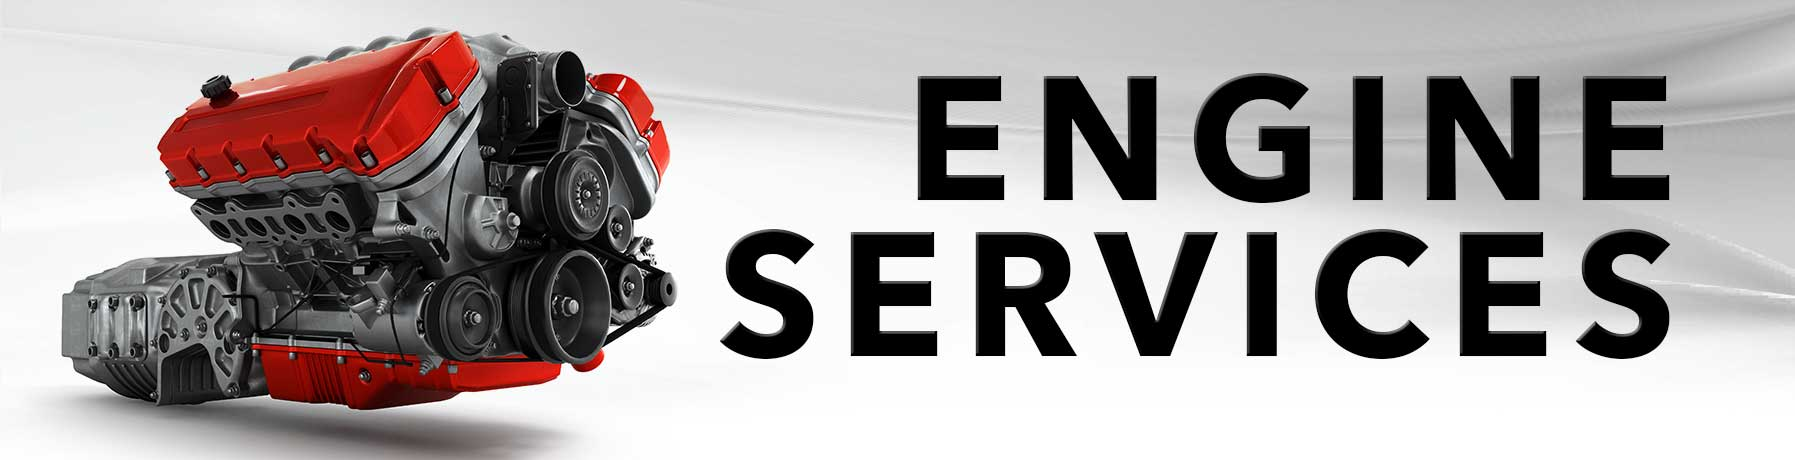 We service & repair or replace engines